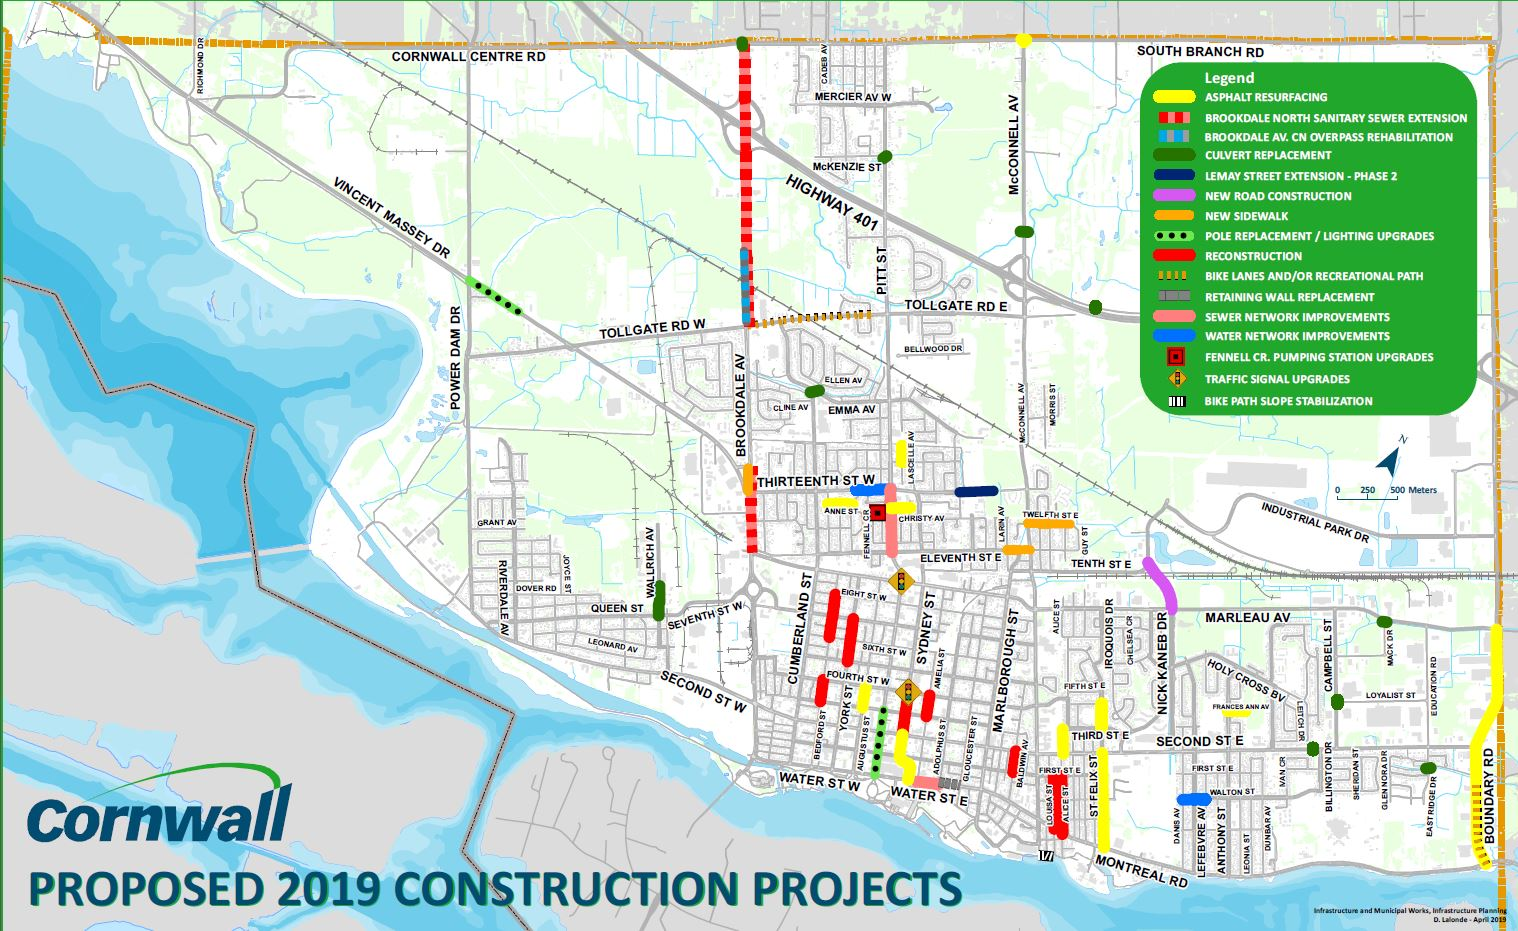 Map of planned construction projects